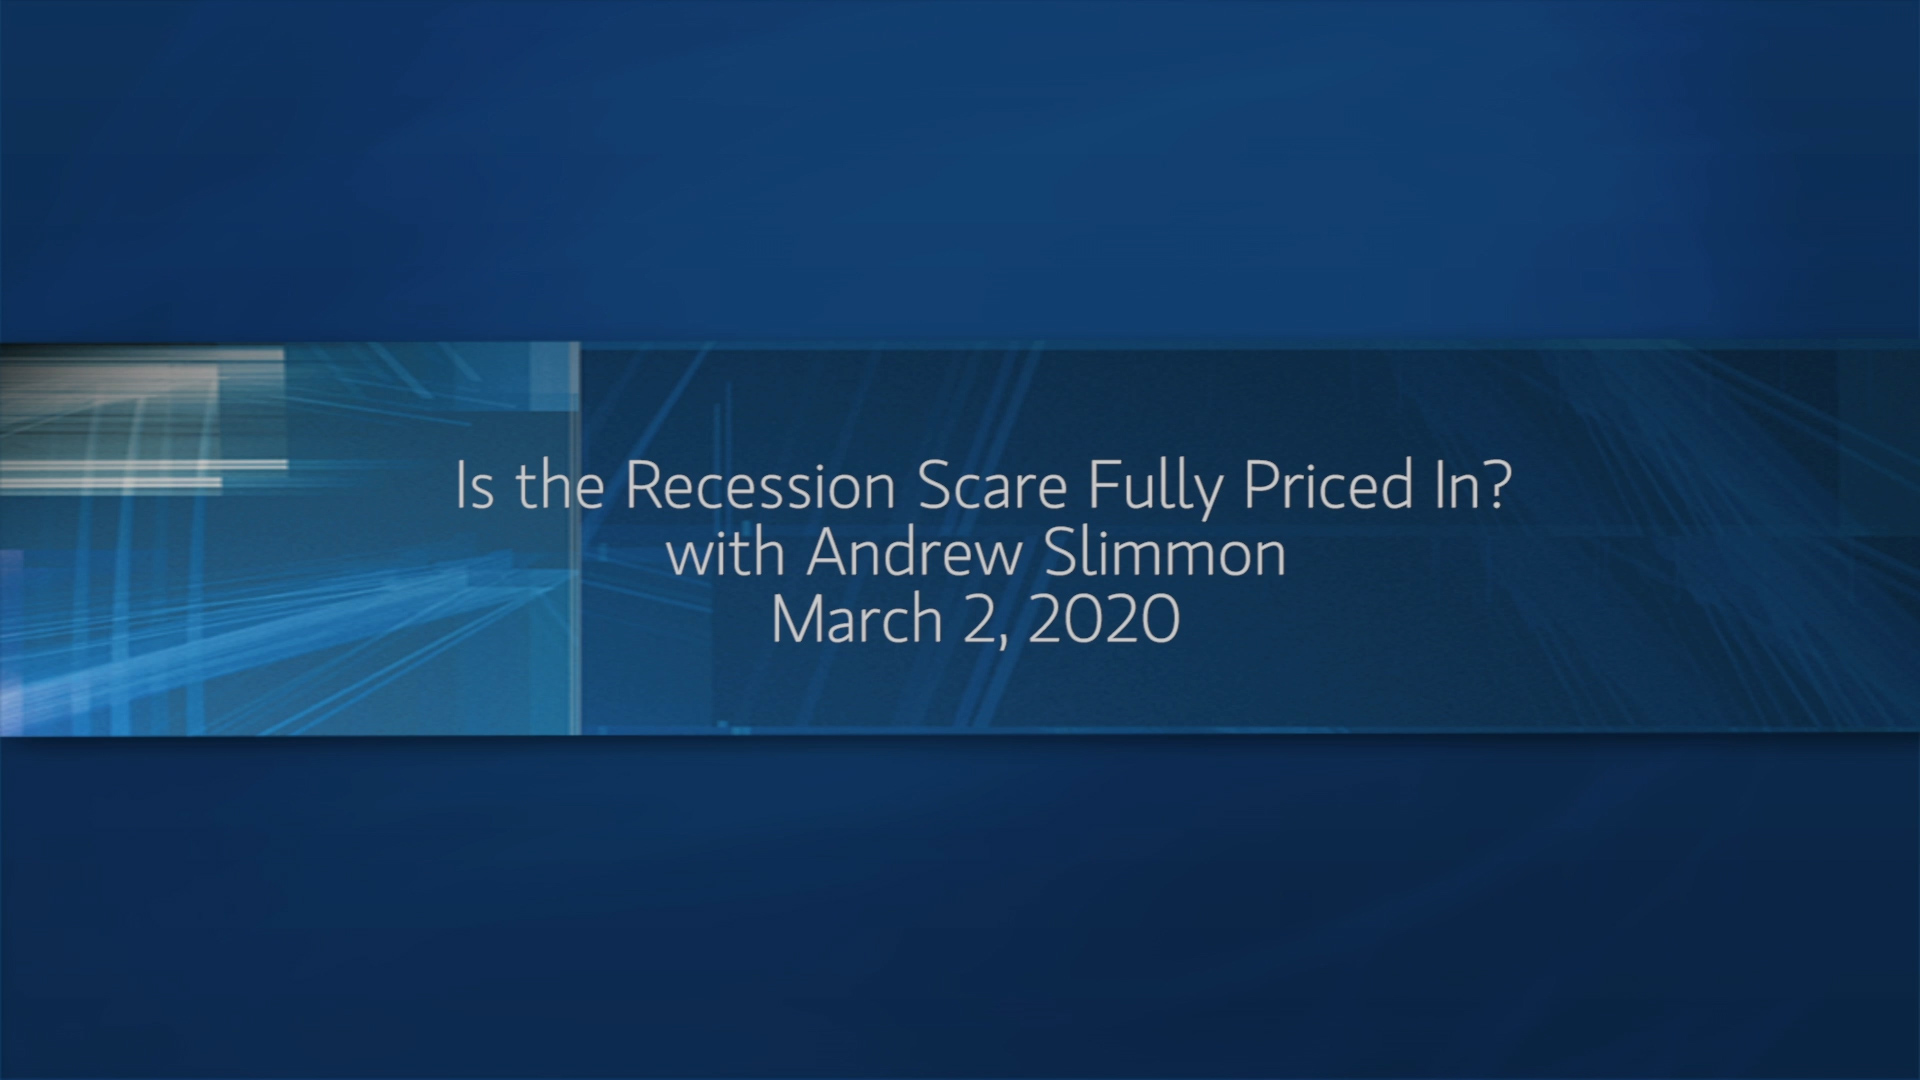 Is the Recession Scare Fully Priced In?